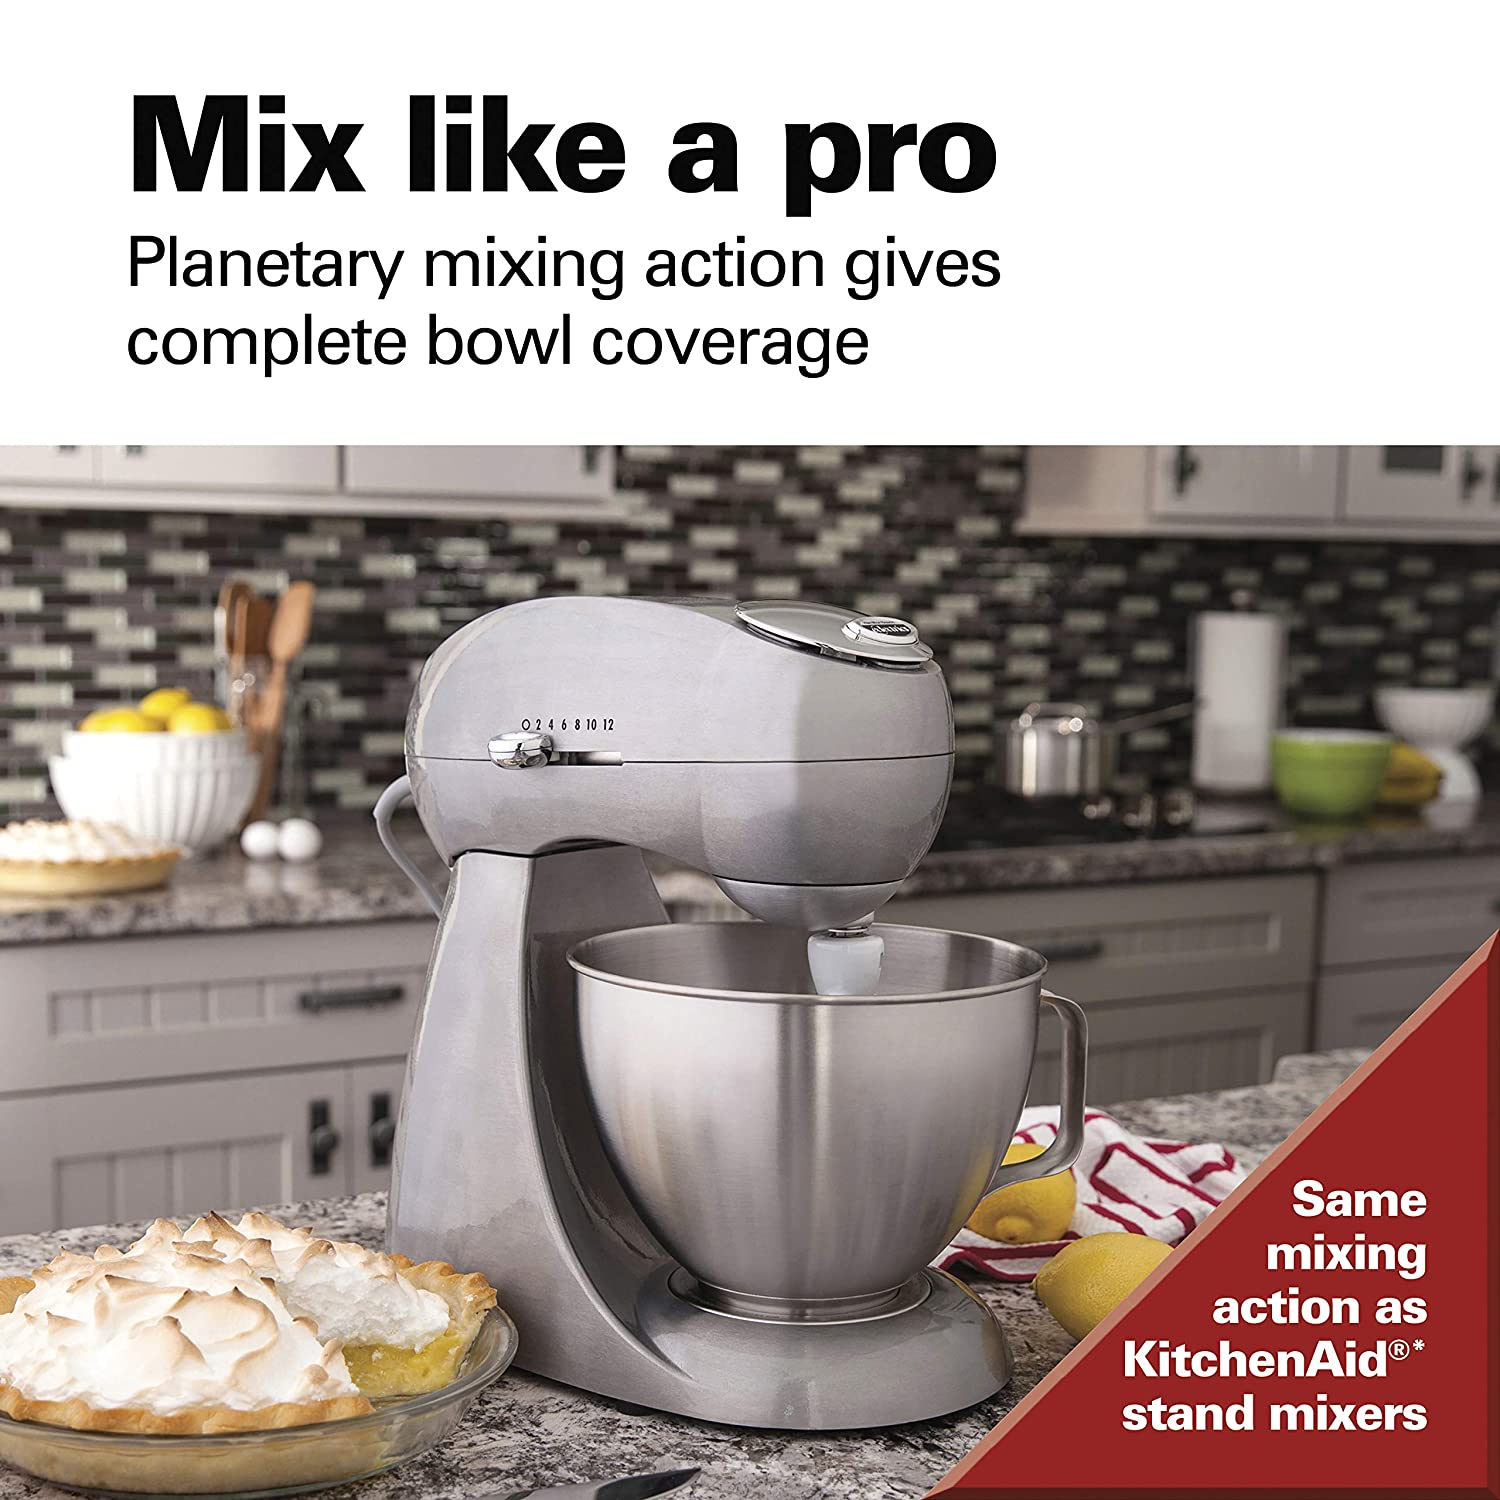 Hamilton Beach Eclectrics All-Metal 12-Speed Electric Stand Mixer, Tilt-Head, 4.5 Quarts, Pouring Shield, Sterling 63220